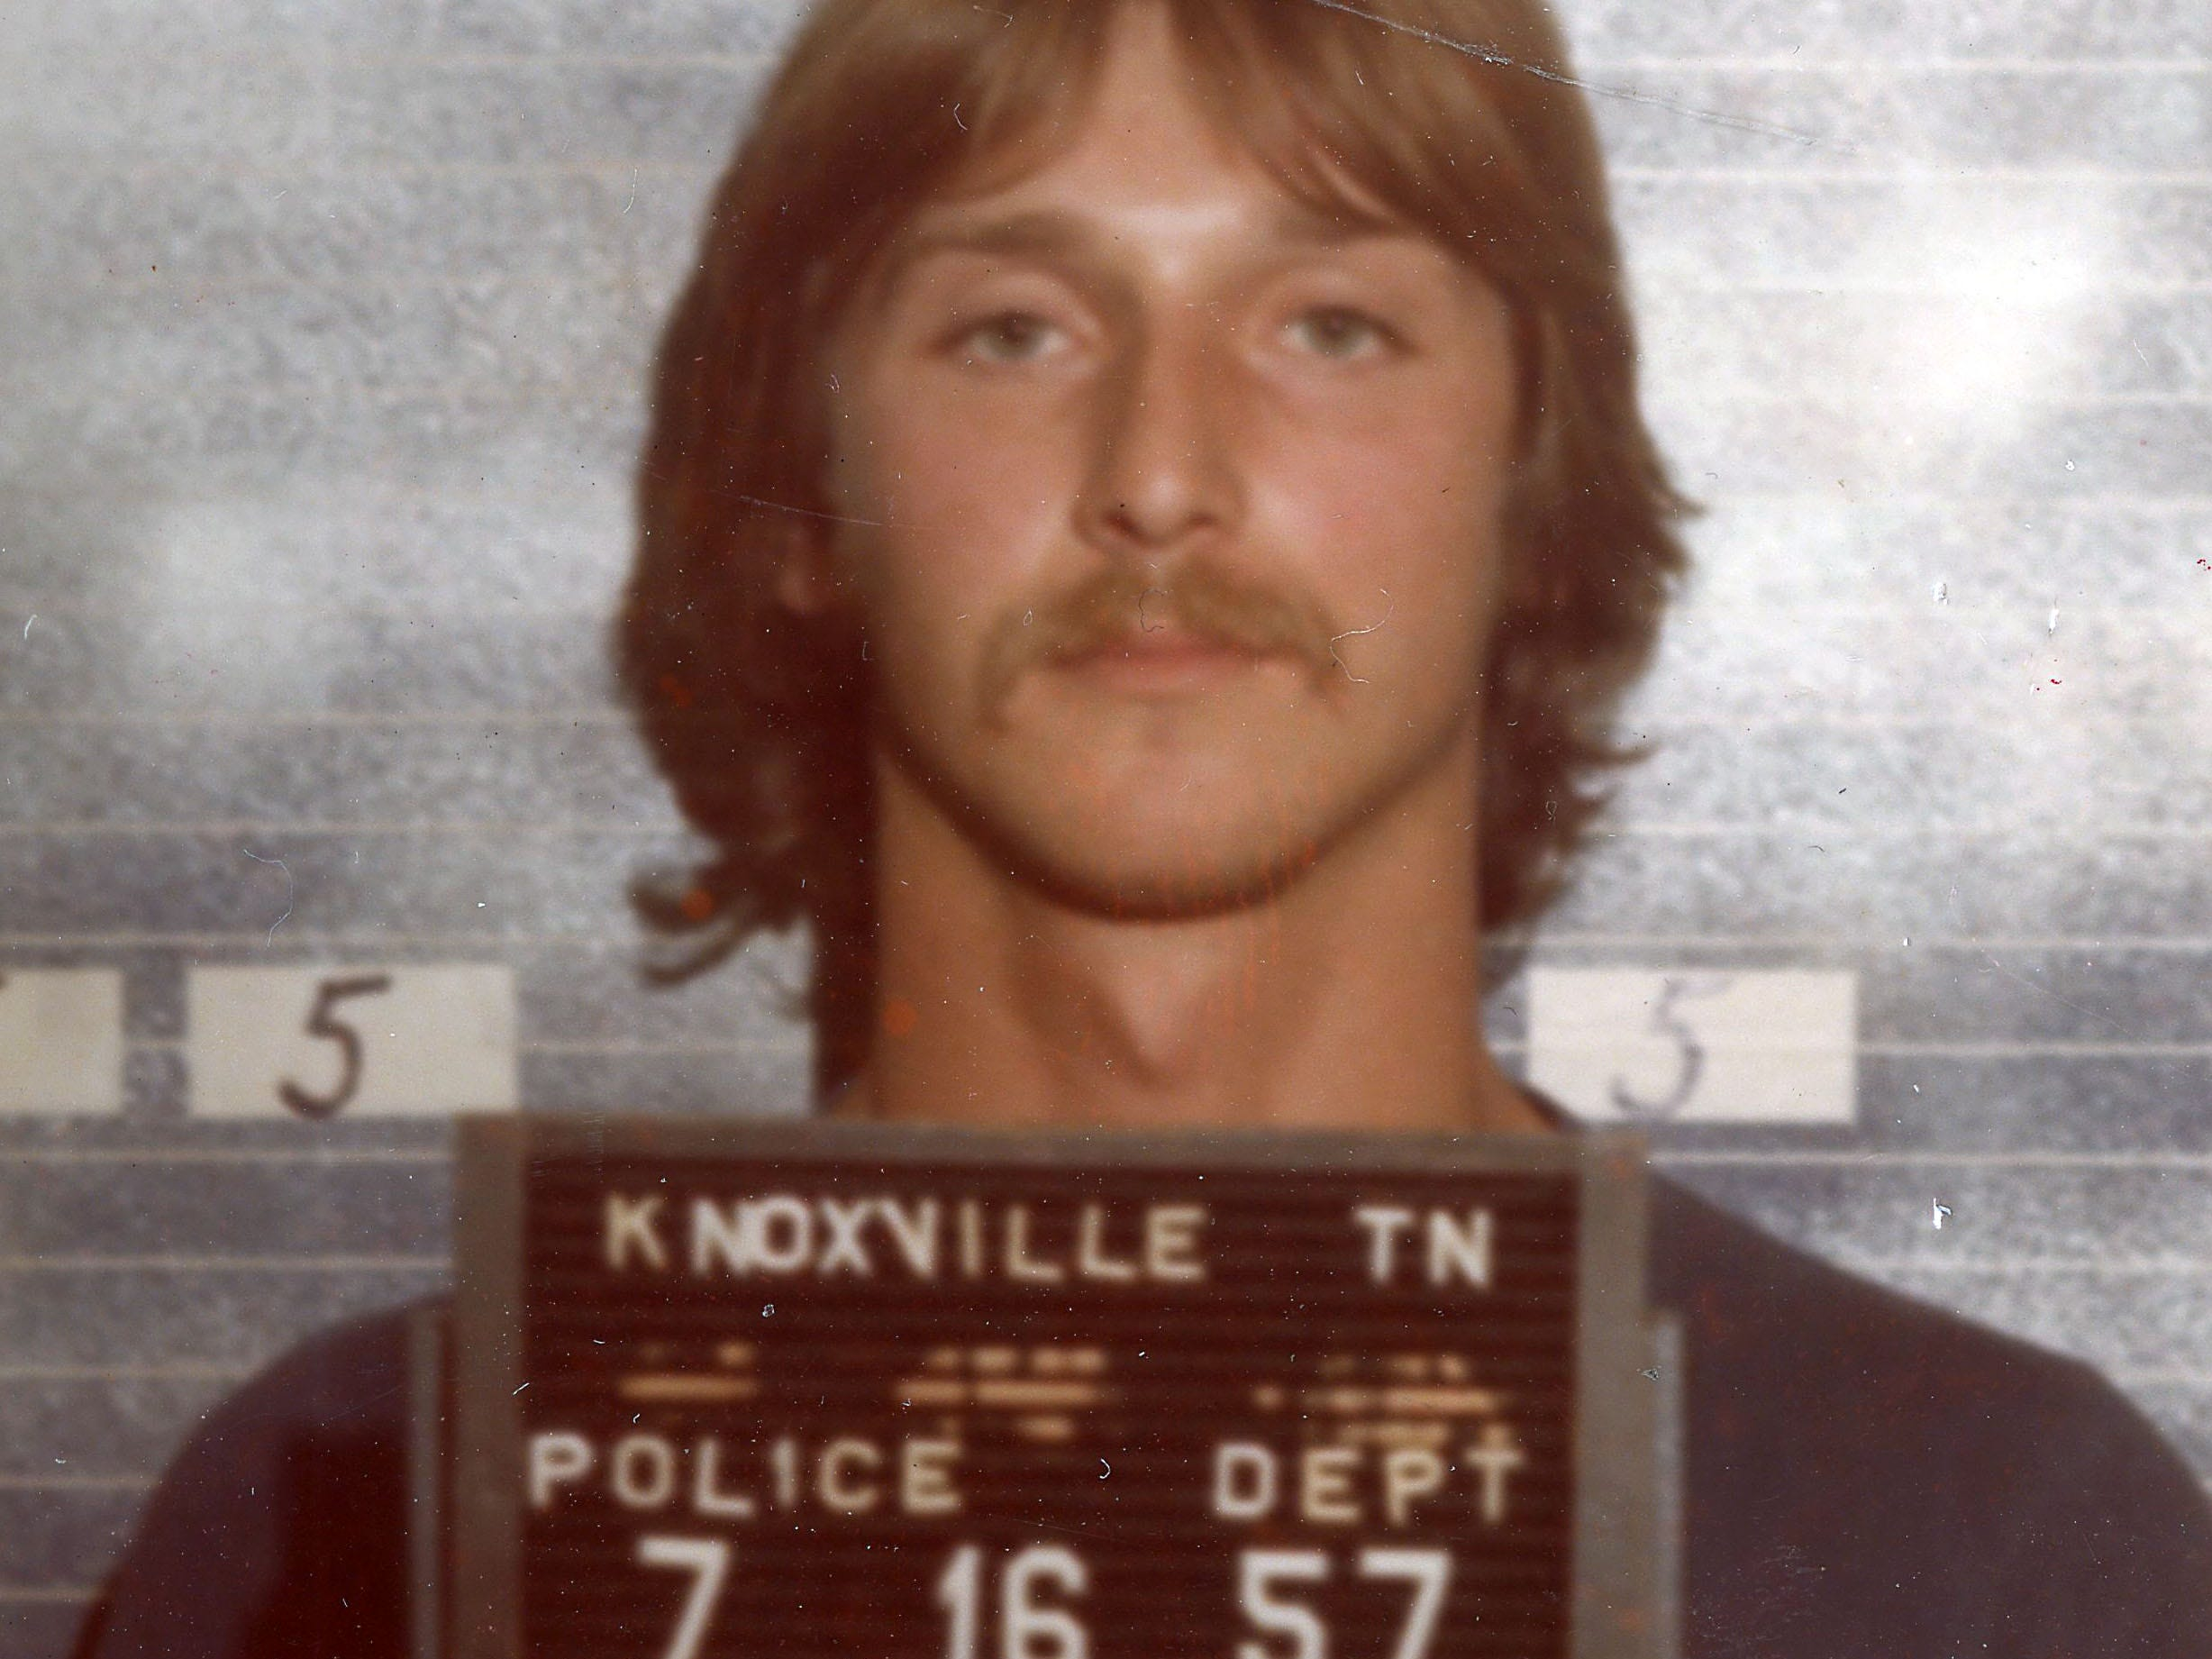 David Earl Miller, scheduled to die Dec. 6, 2018, for killing Lee Standifer in South Knoxville in May 1981.